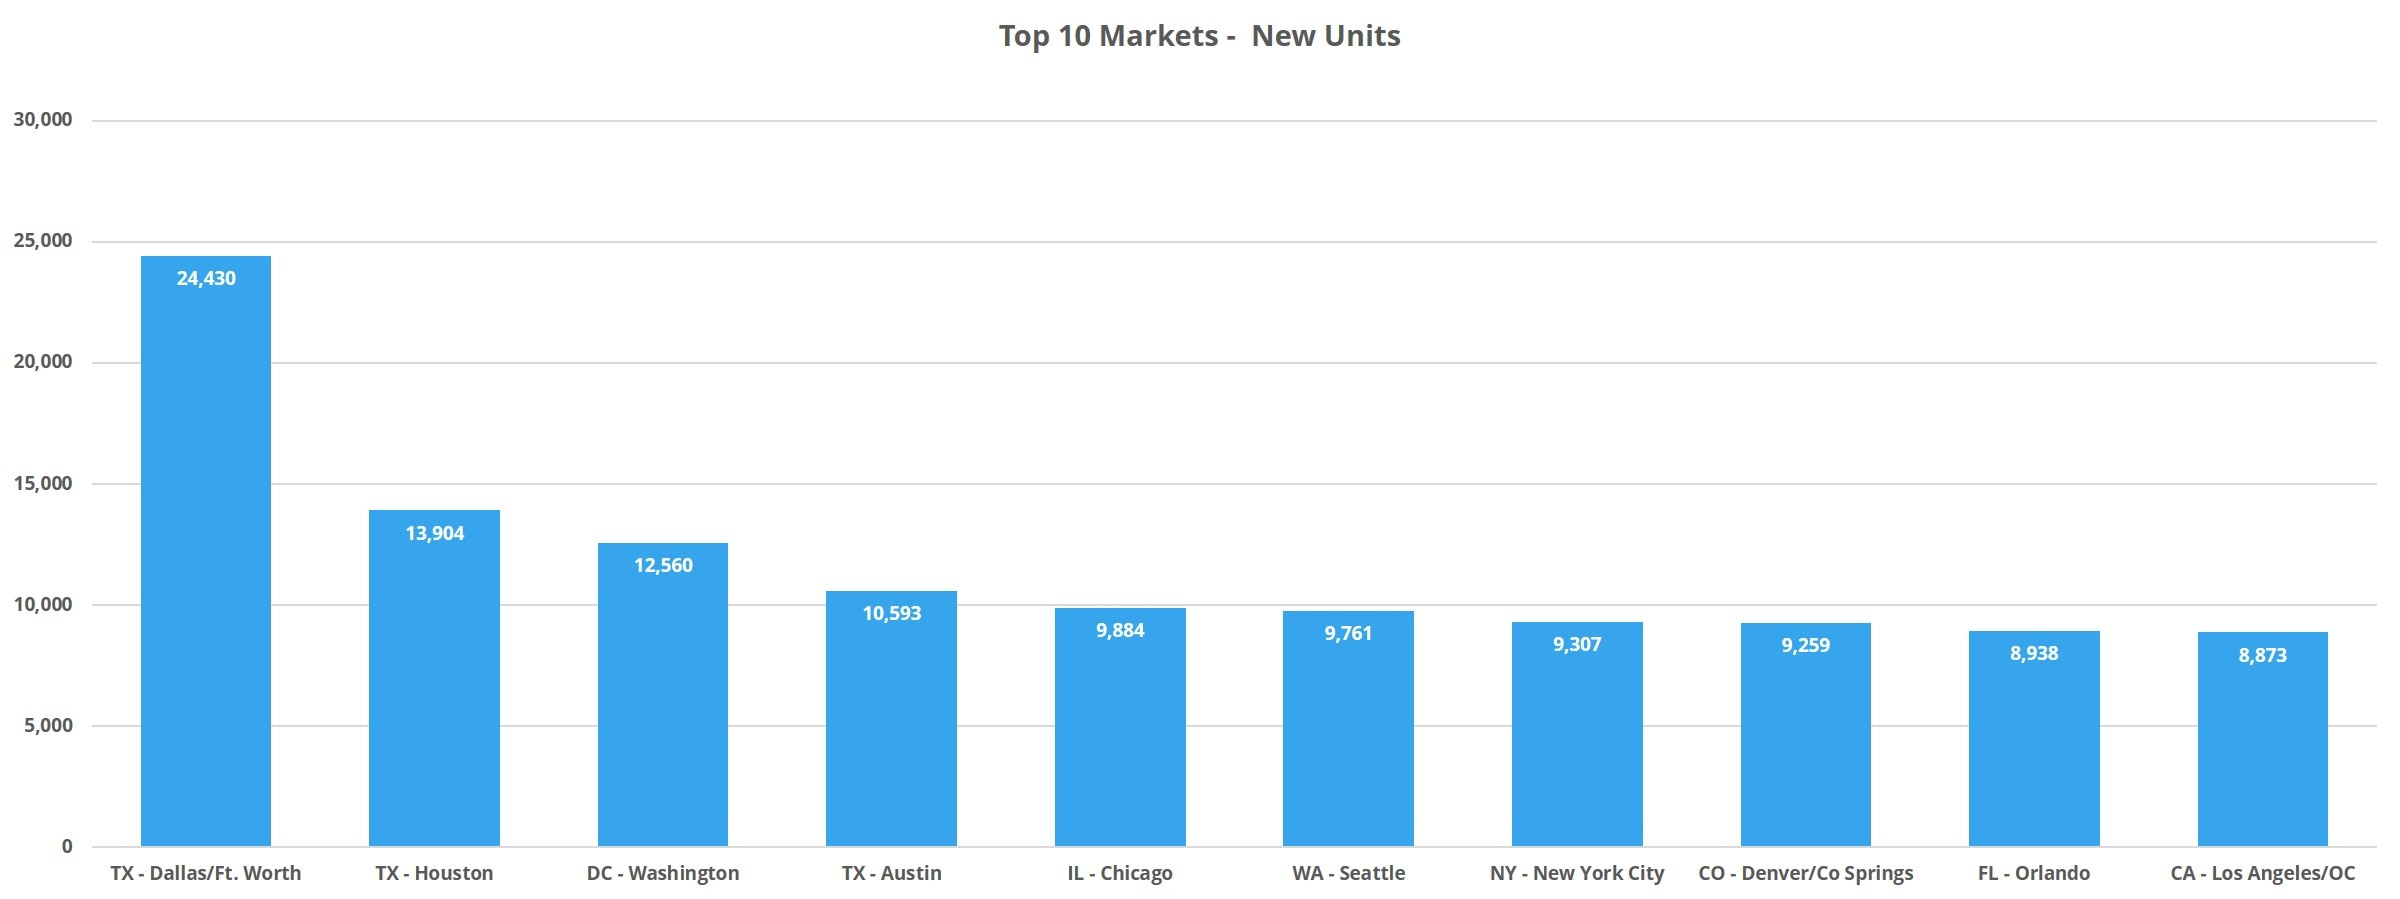 Year in Review Top 10 Markets New Units